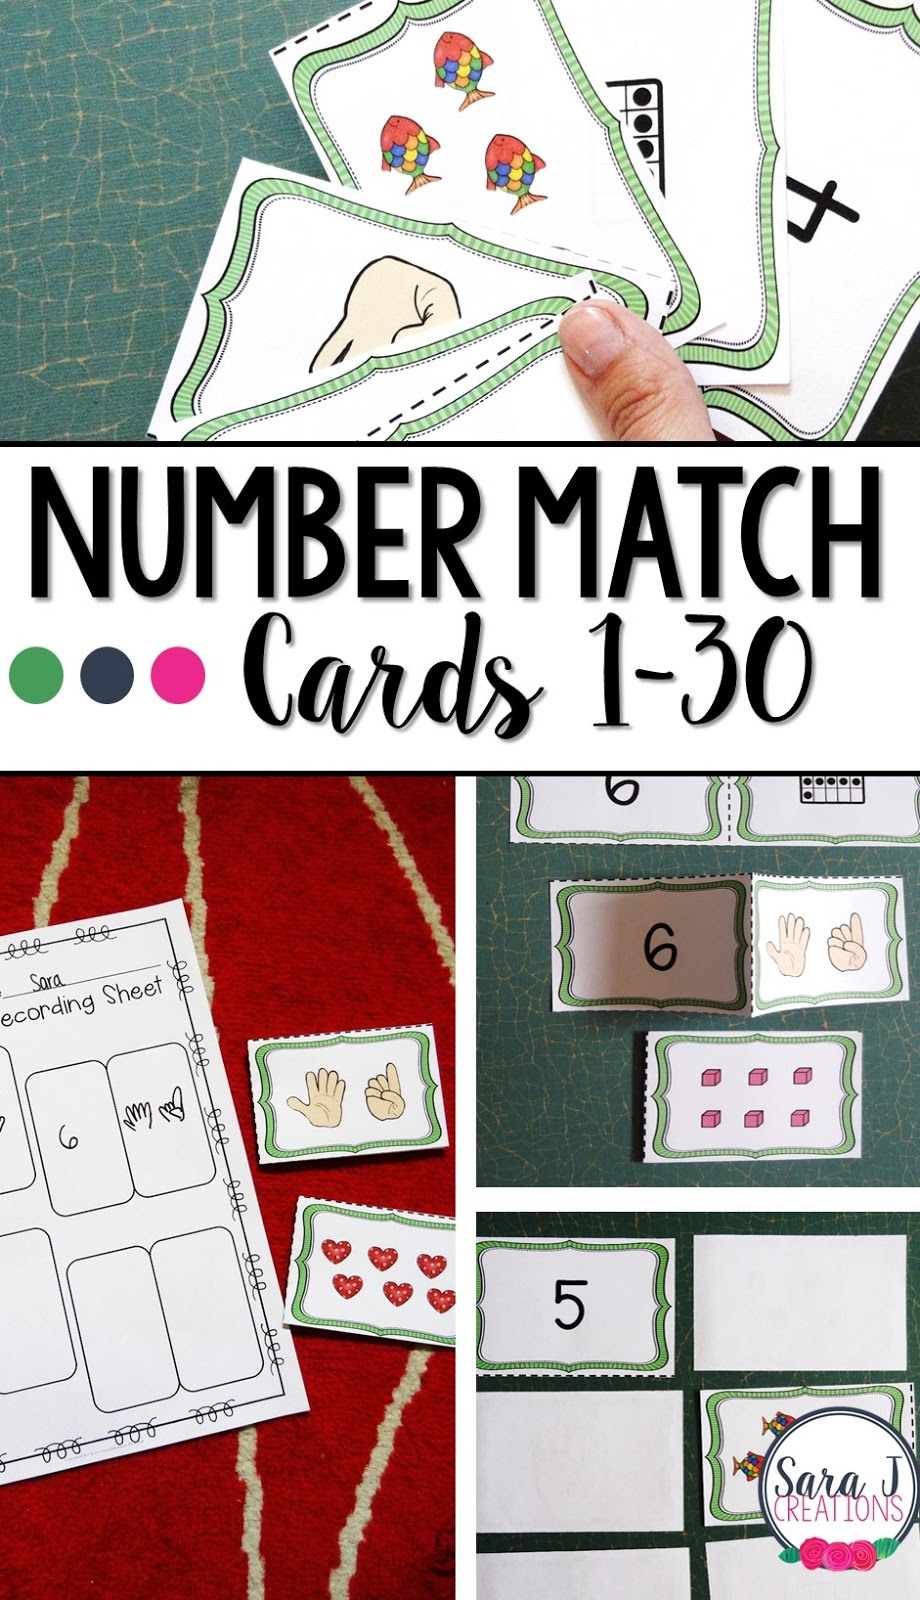 Number match cards make fun learning games for students who need to practice numbers 1-30.